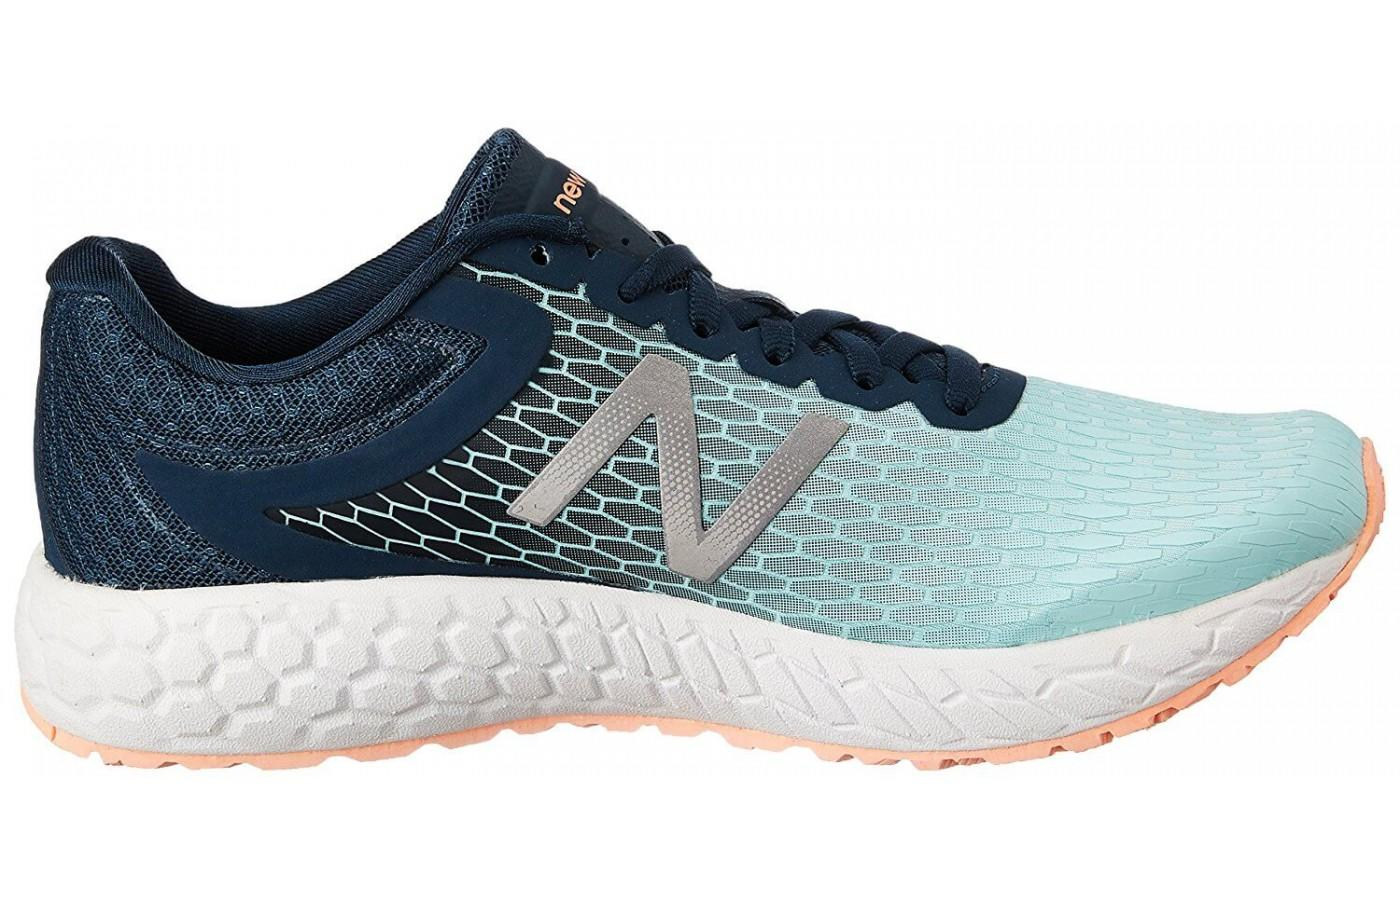 New Balance Fresh Foam Boracay V3 features Fresh Foam cushioning